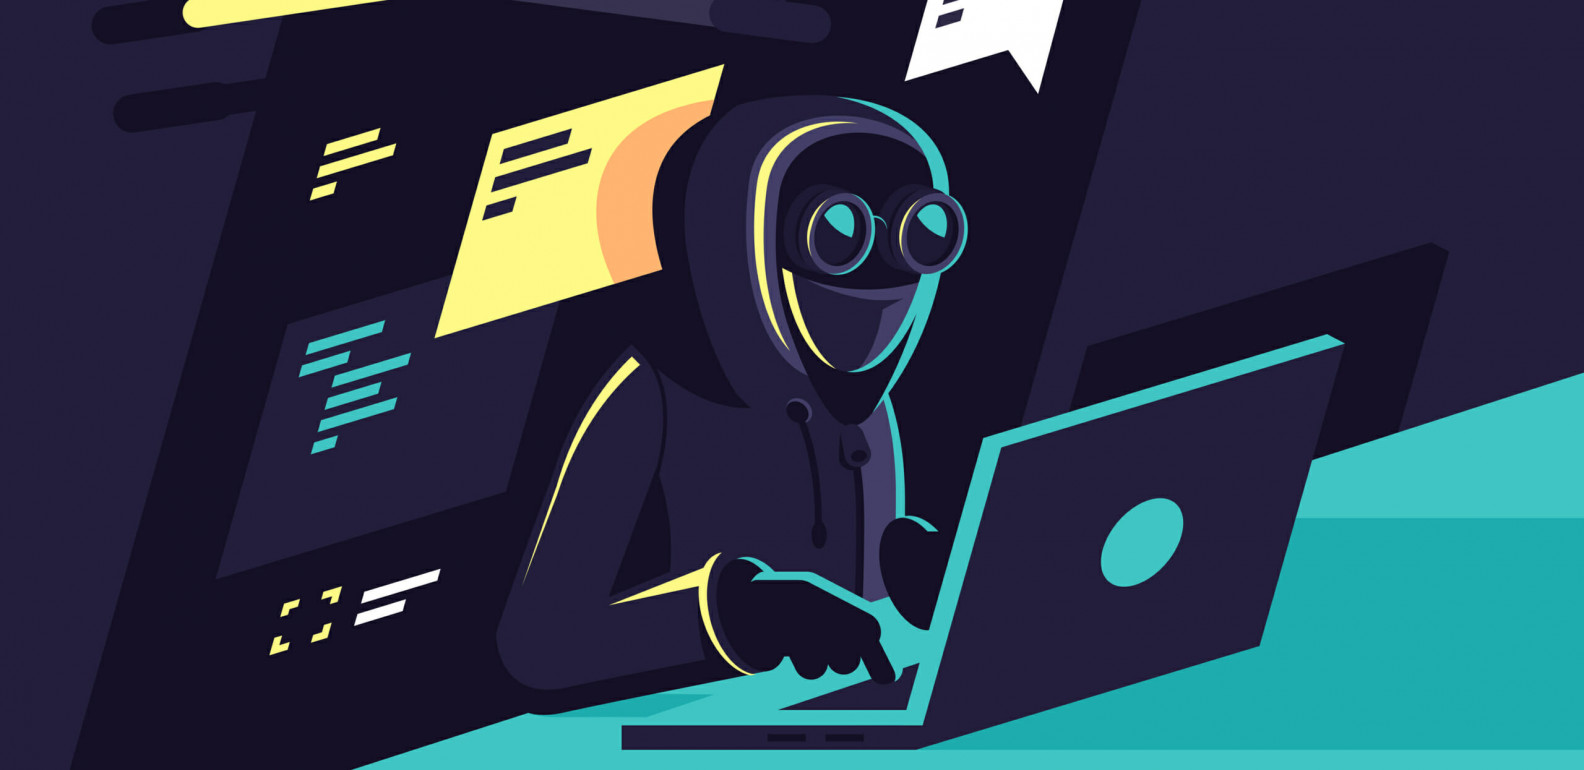 The main cyber security threats of 2020